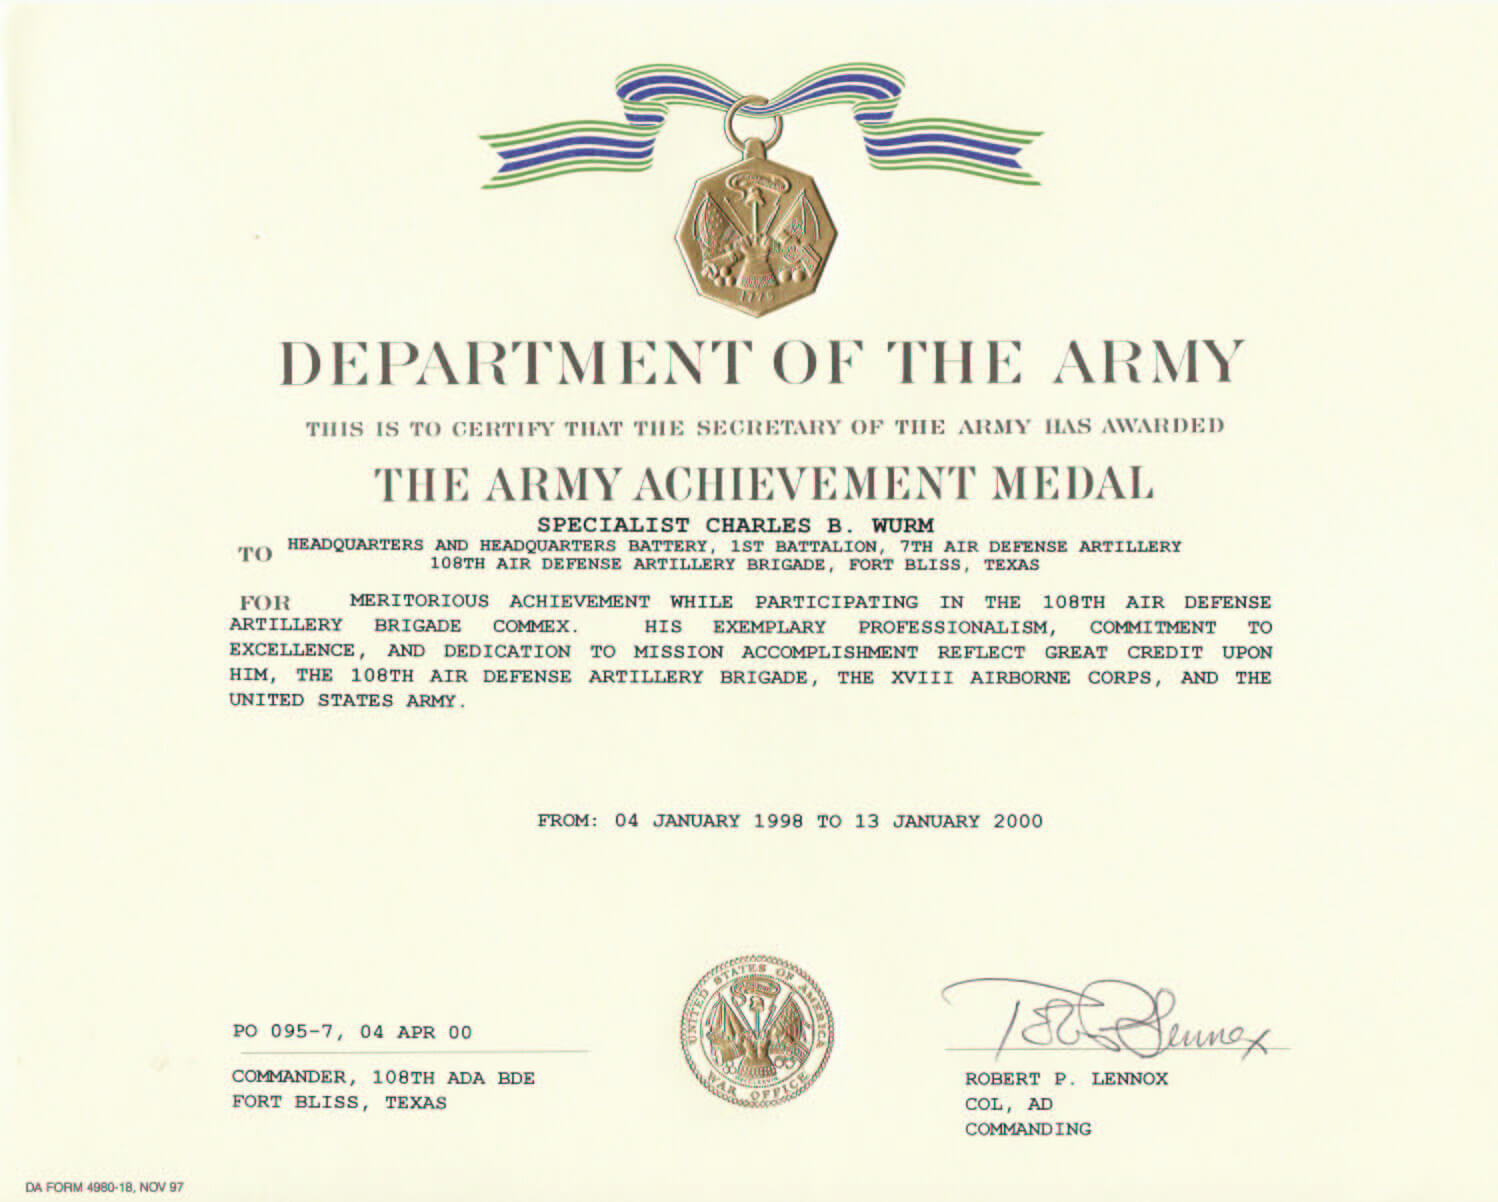 Army Achievement Medal Certificate Template ] – States Army Intended For Certificate Of Achievement Army Template